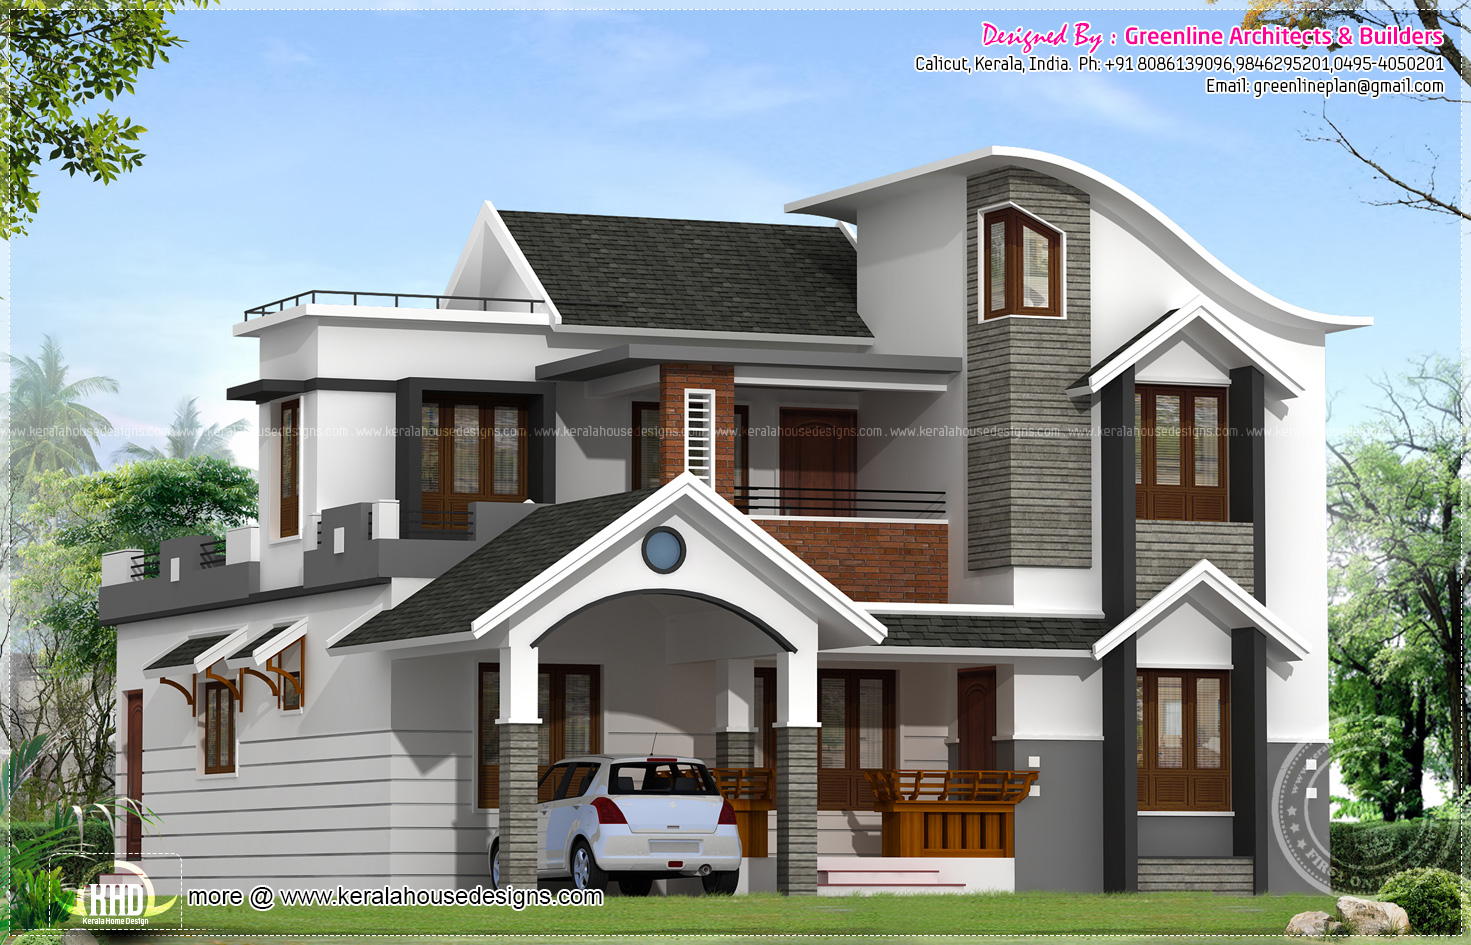 Modern house architecture in kerala kerala home design for Modern style house plans